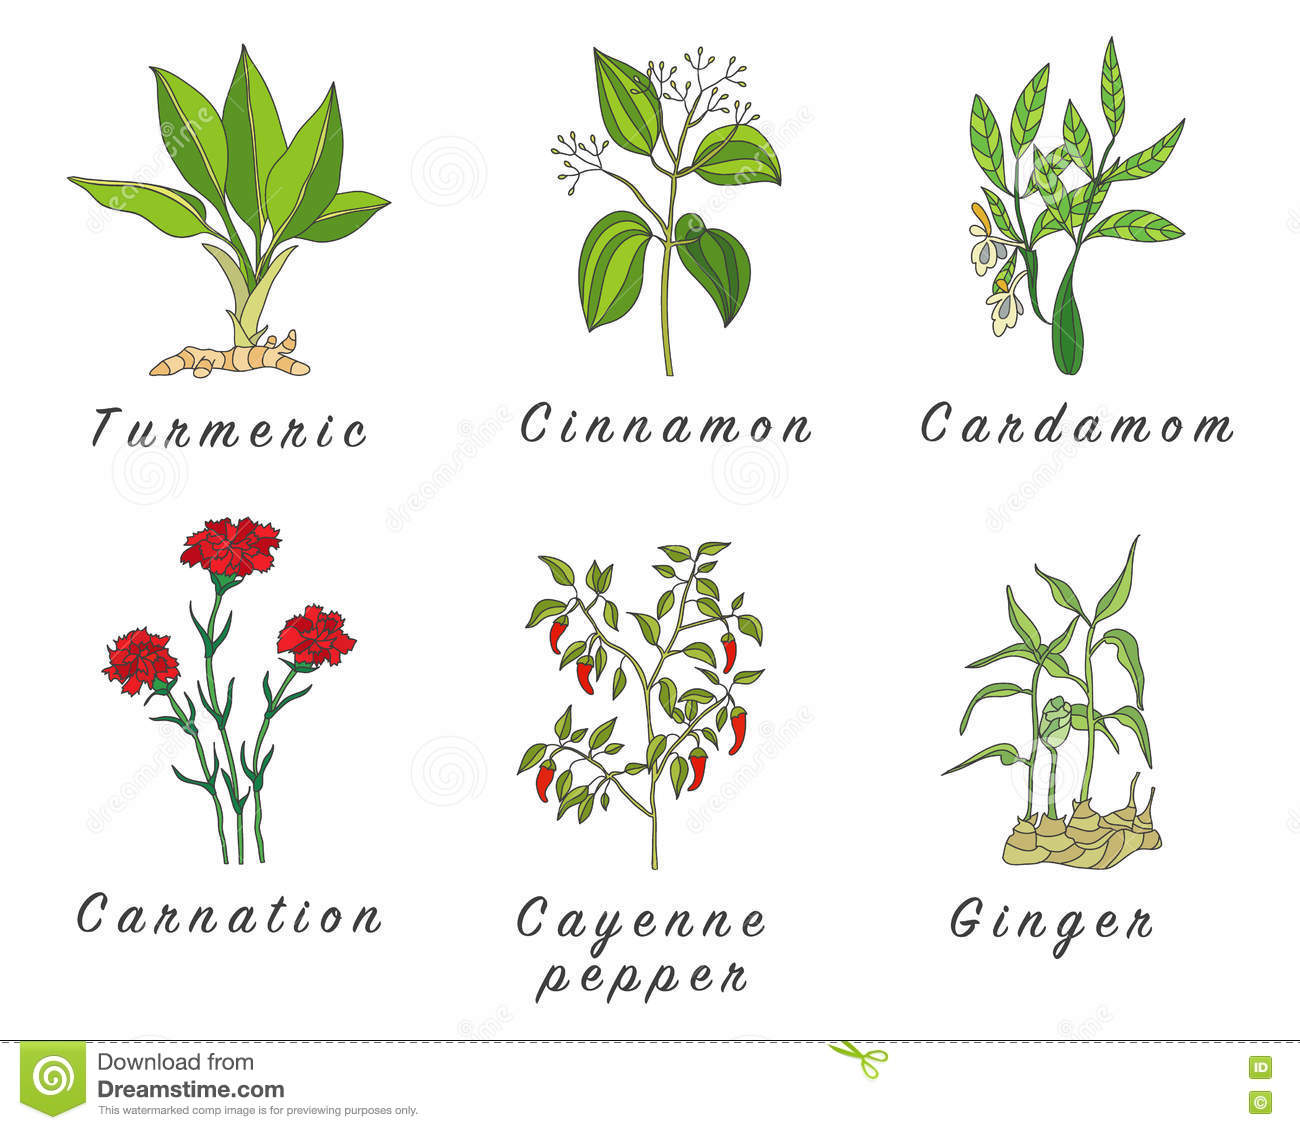 healing plants and herbs essay Free essay examples, how to write essay on herbal medicine herbs plants good example essay, research paper, custom writing write my essay on medicine herbal herbs.